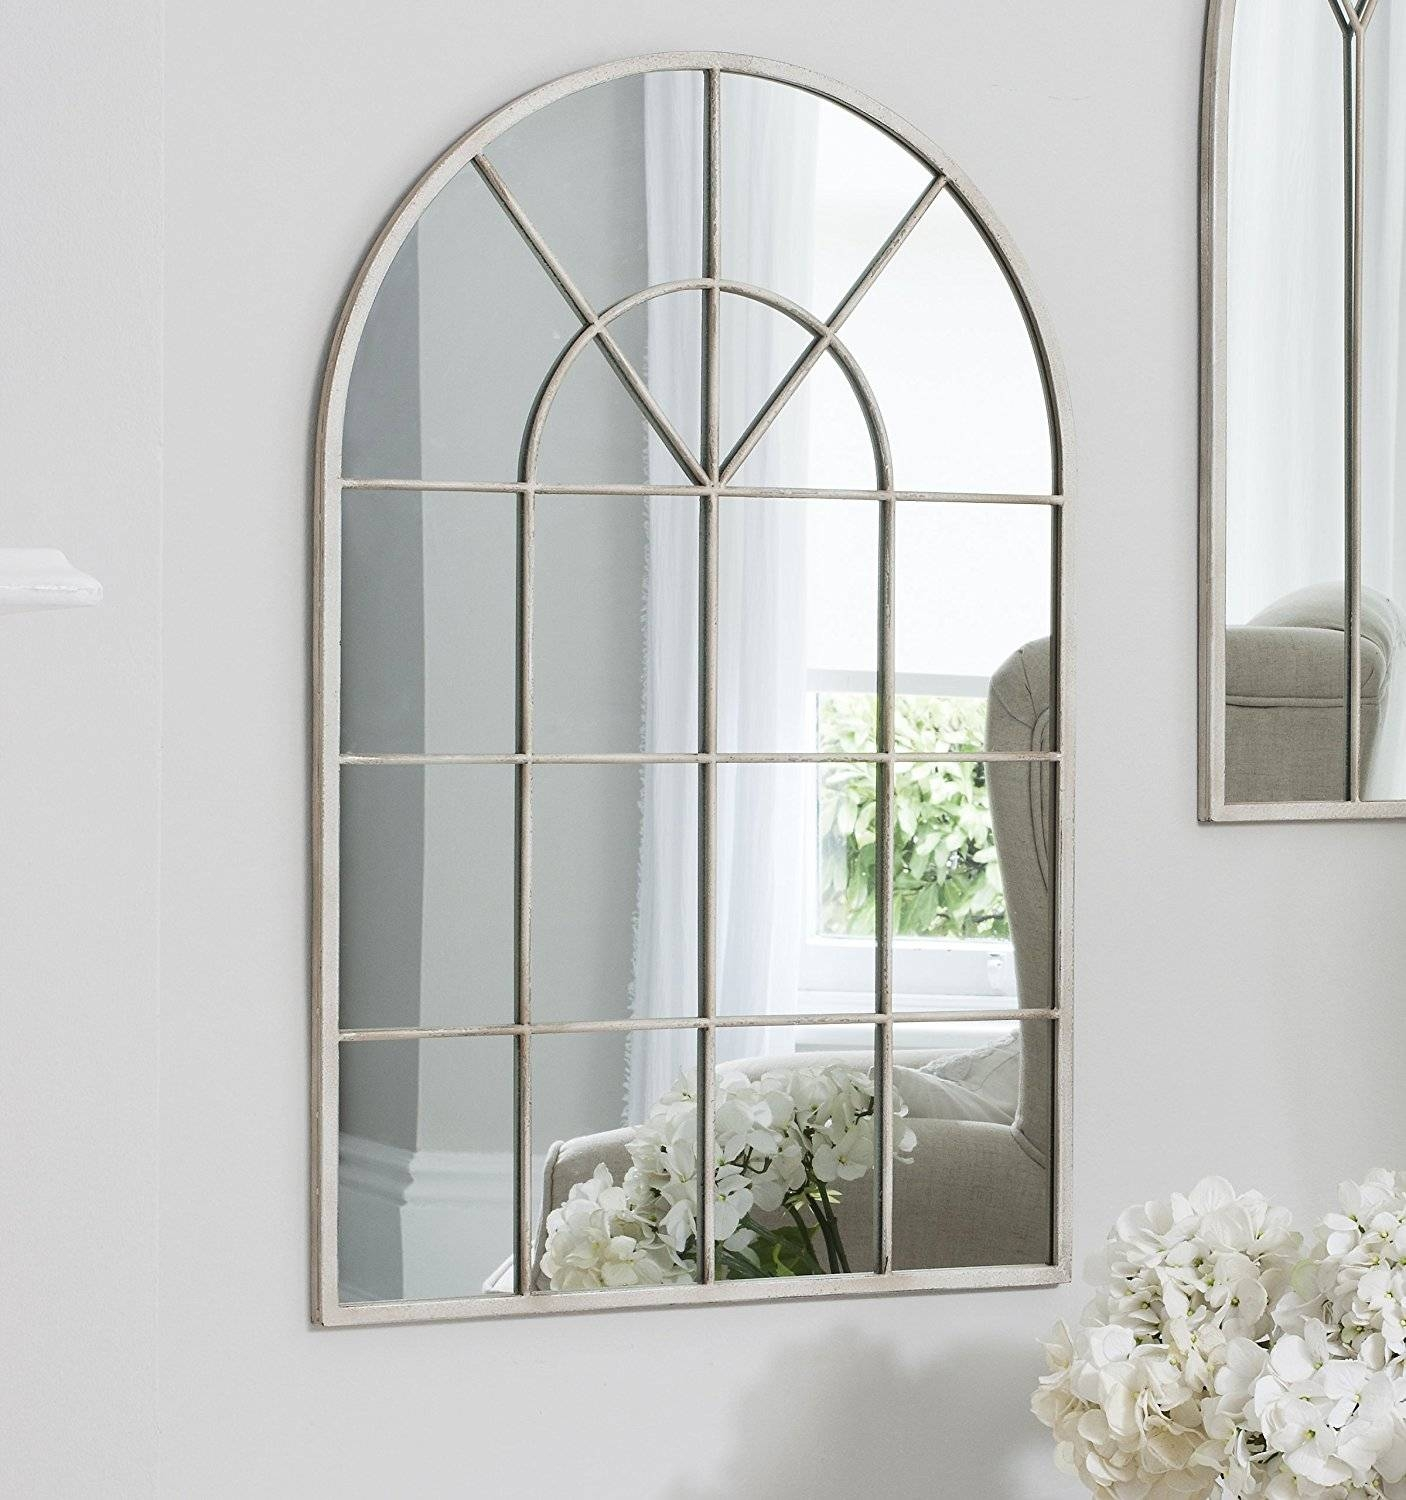 Wall Decor: Arch Wall Mirror Design. Metal Arch Wall Mirror. Large pertaining to White Arched Window Mirrors (Image 19 of 25)